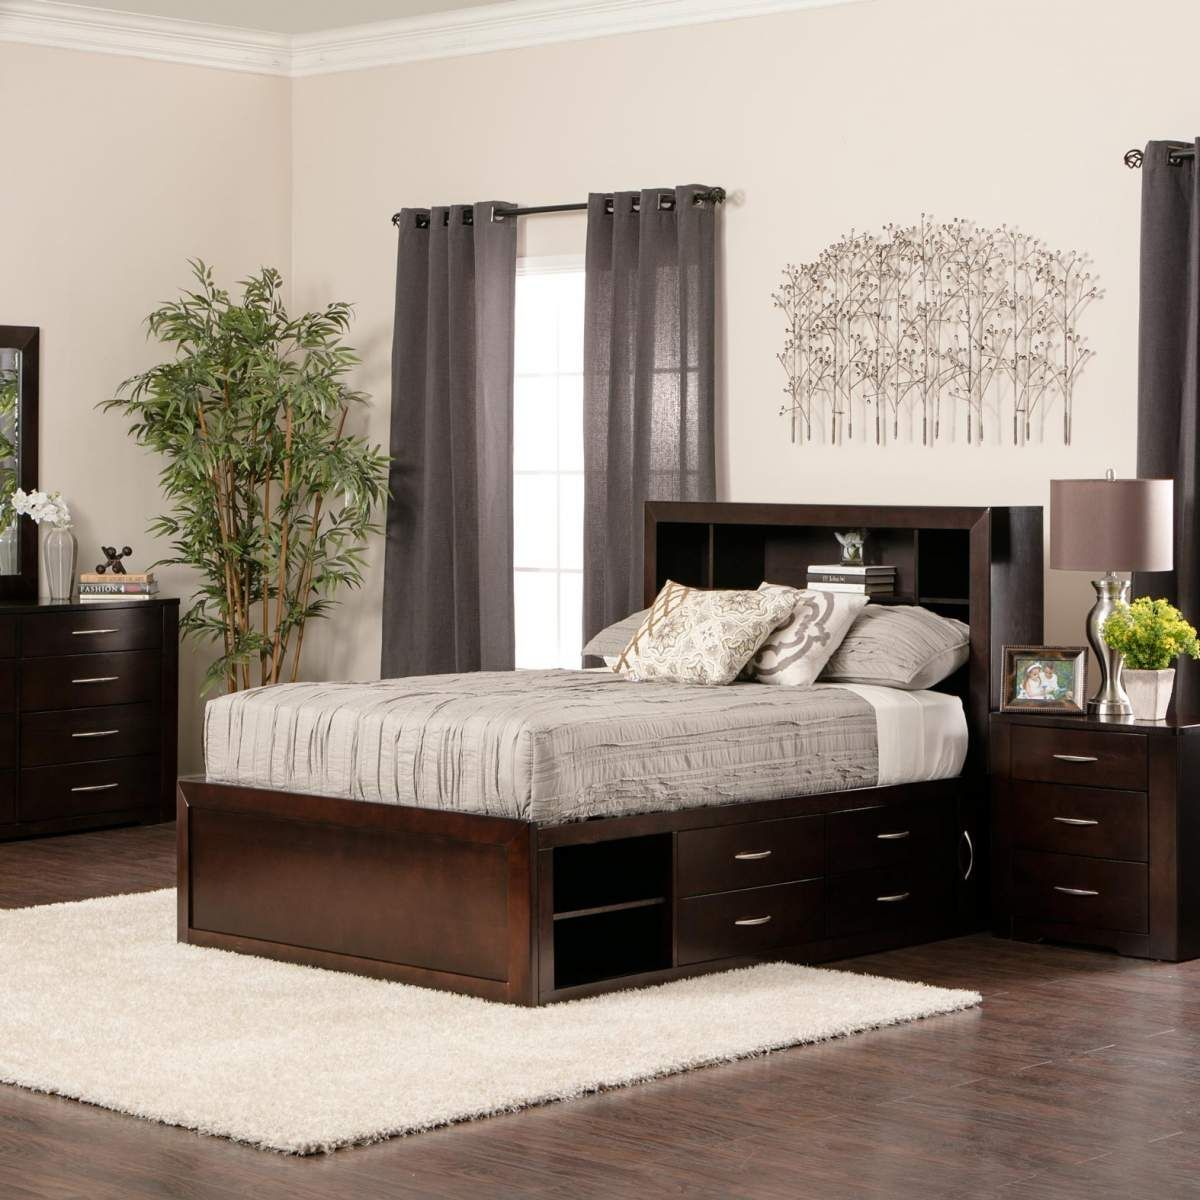 Murano With Images Bedroom Decor For Women Modern Bedroom